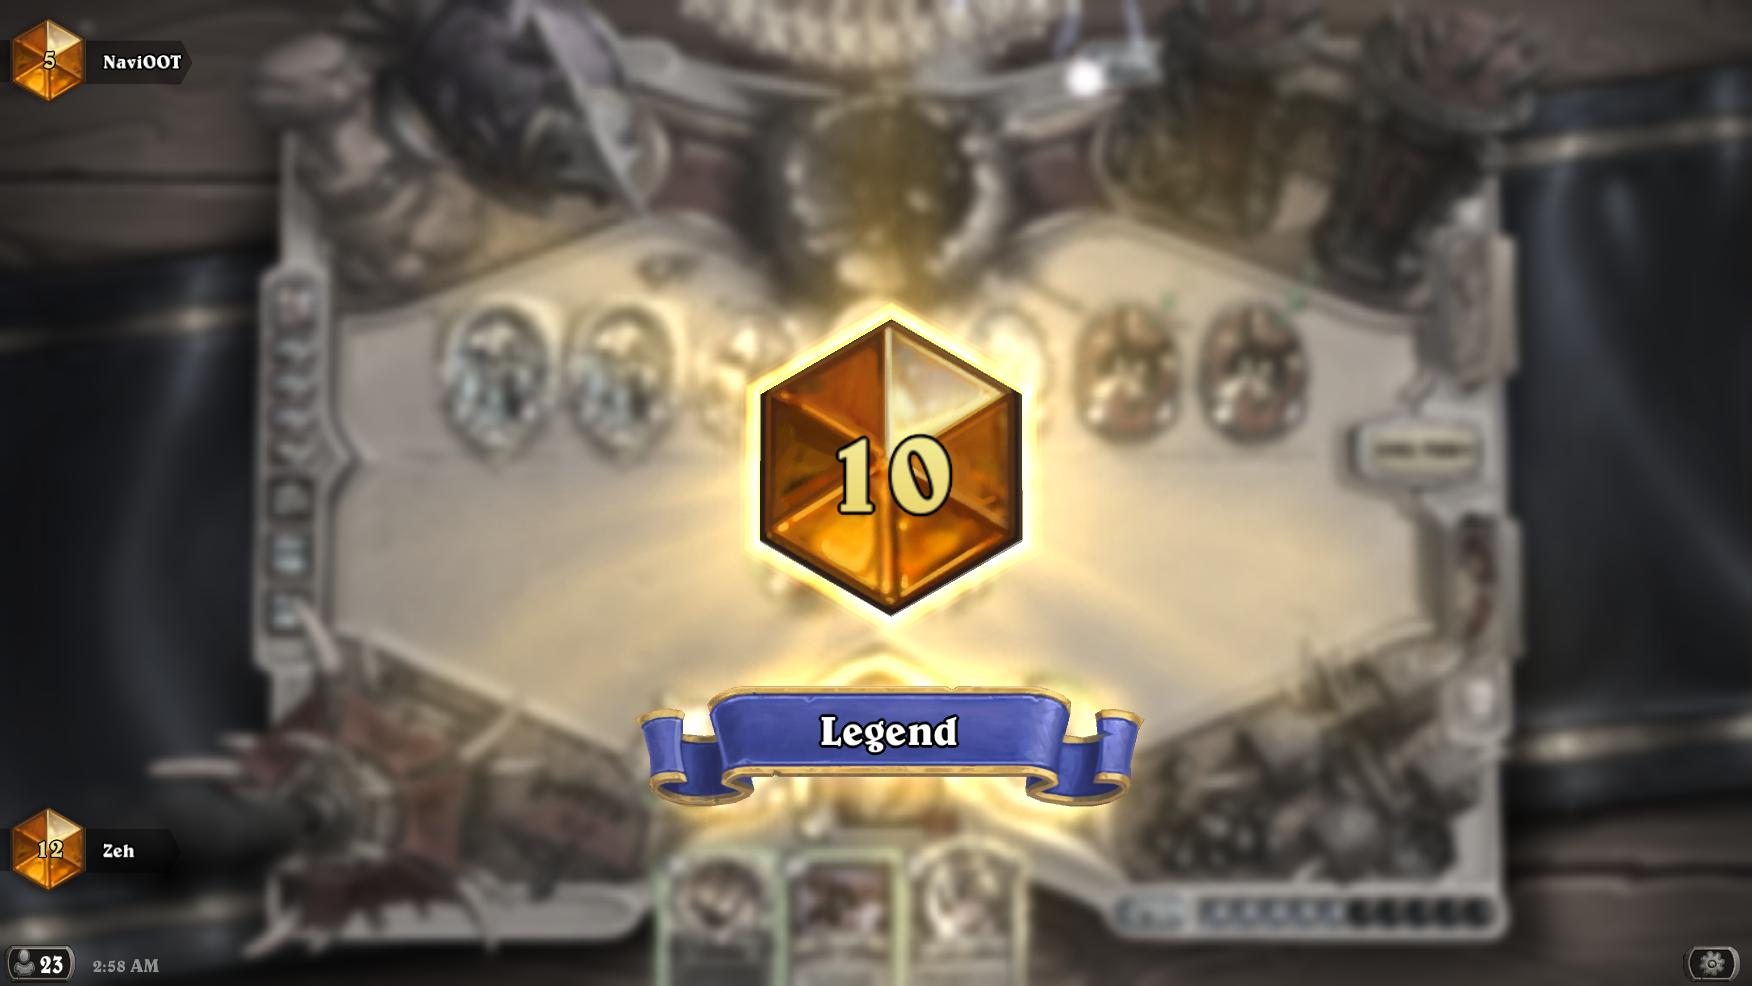 10 Legend] Highlander Warrior (Zeh_HS) - Hearthstone Decks